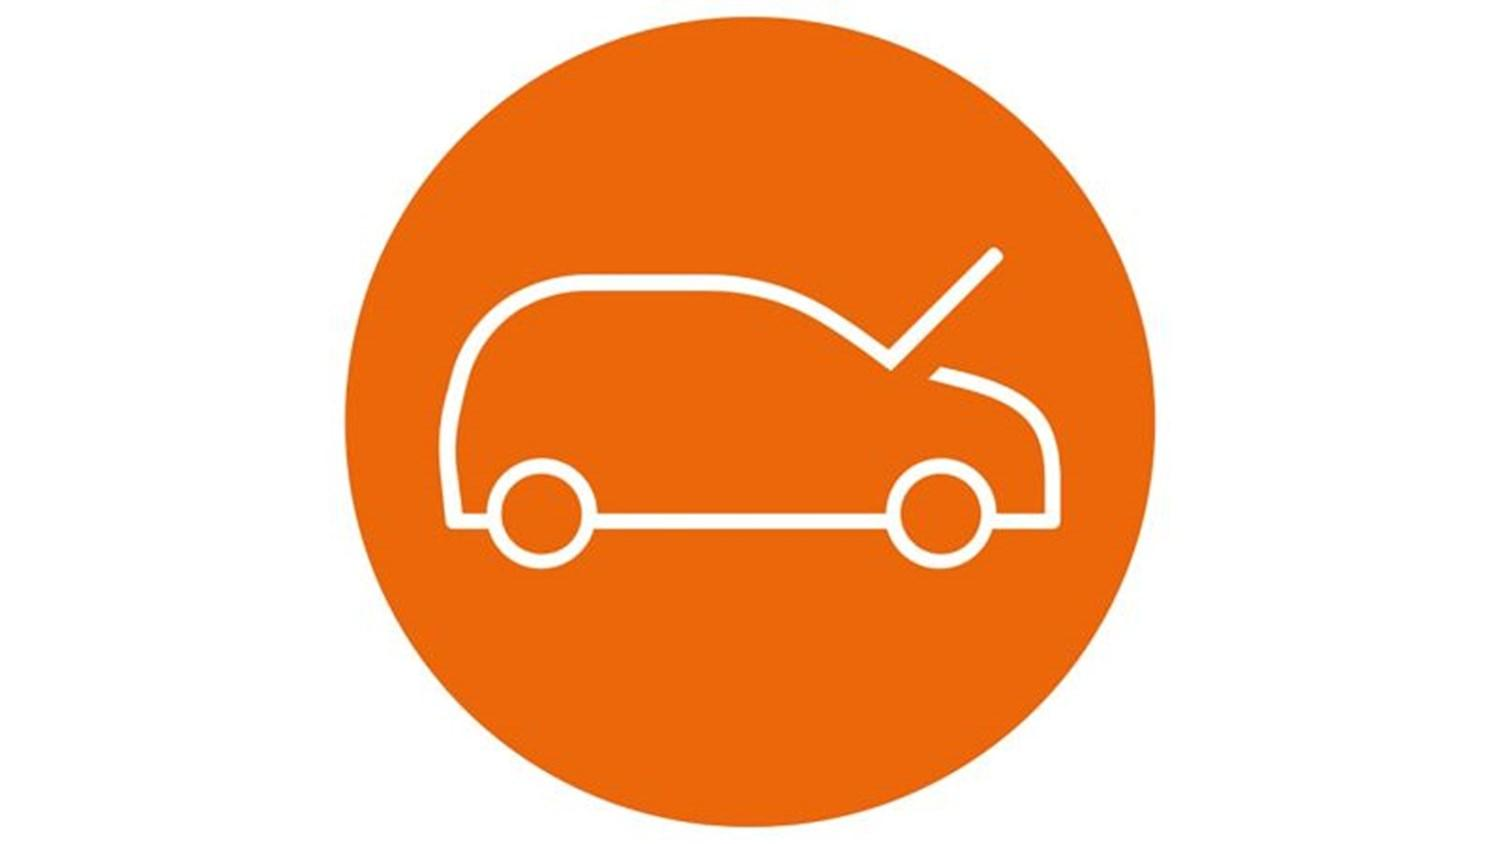 Orange circle with a white car icon with the bonnet open